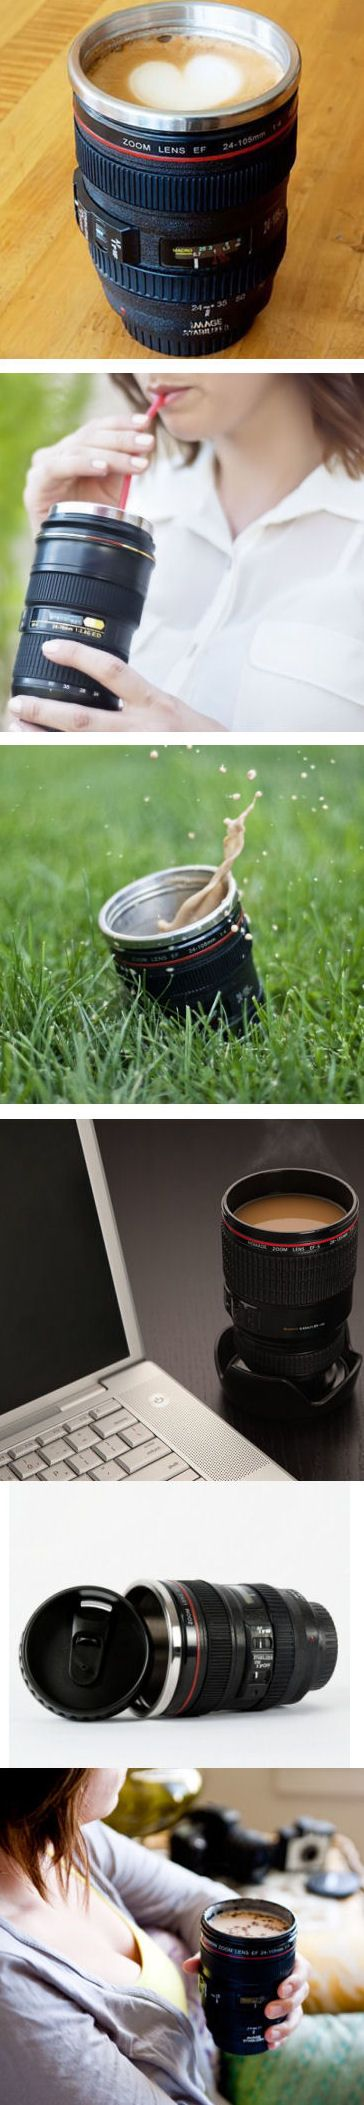 Best Camera Lens Mug Images On Pinterest Camera Lens - Nikon coffee cup lens